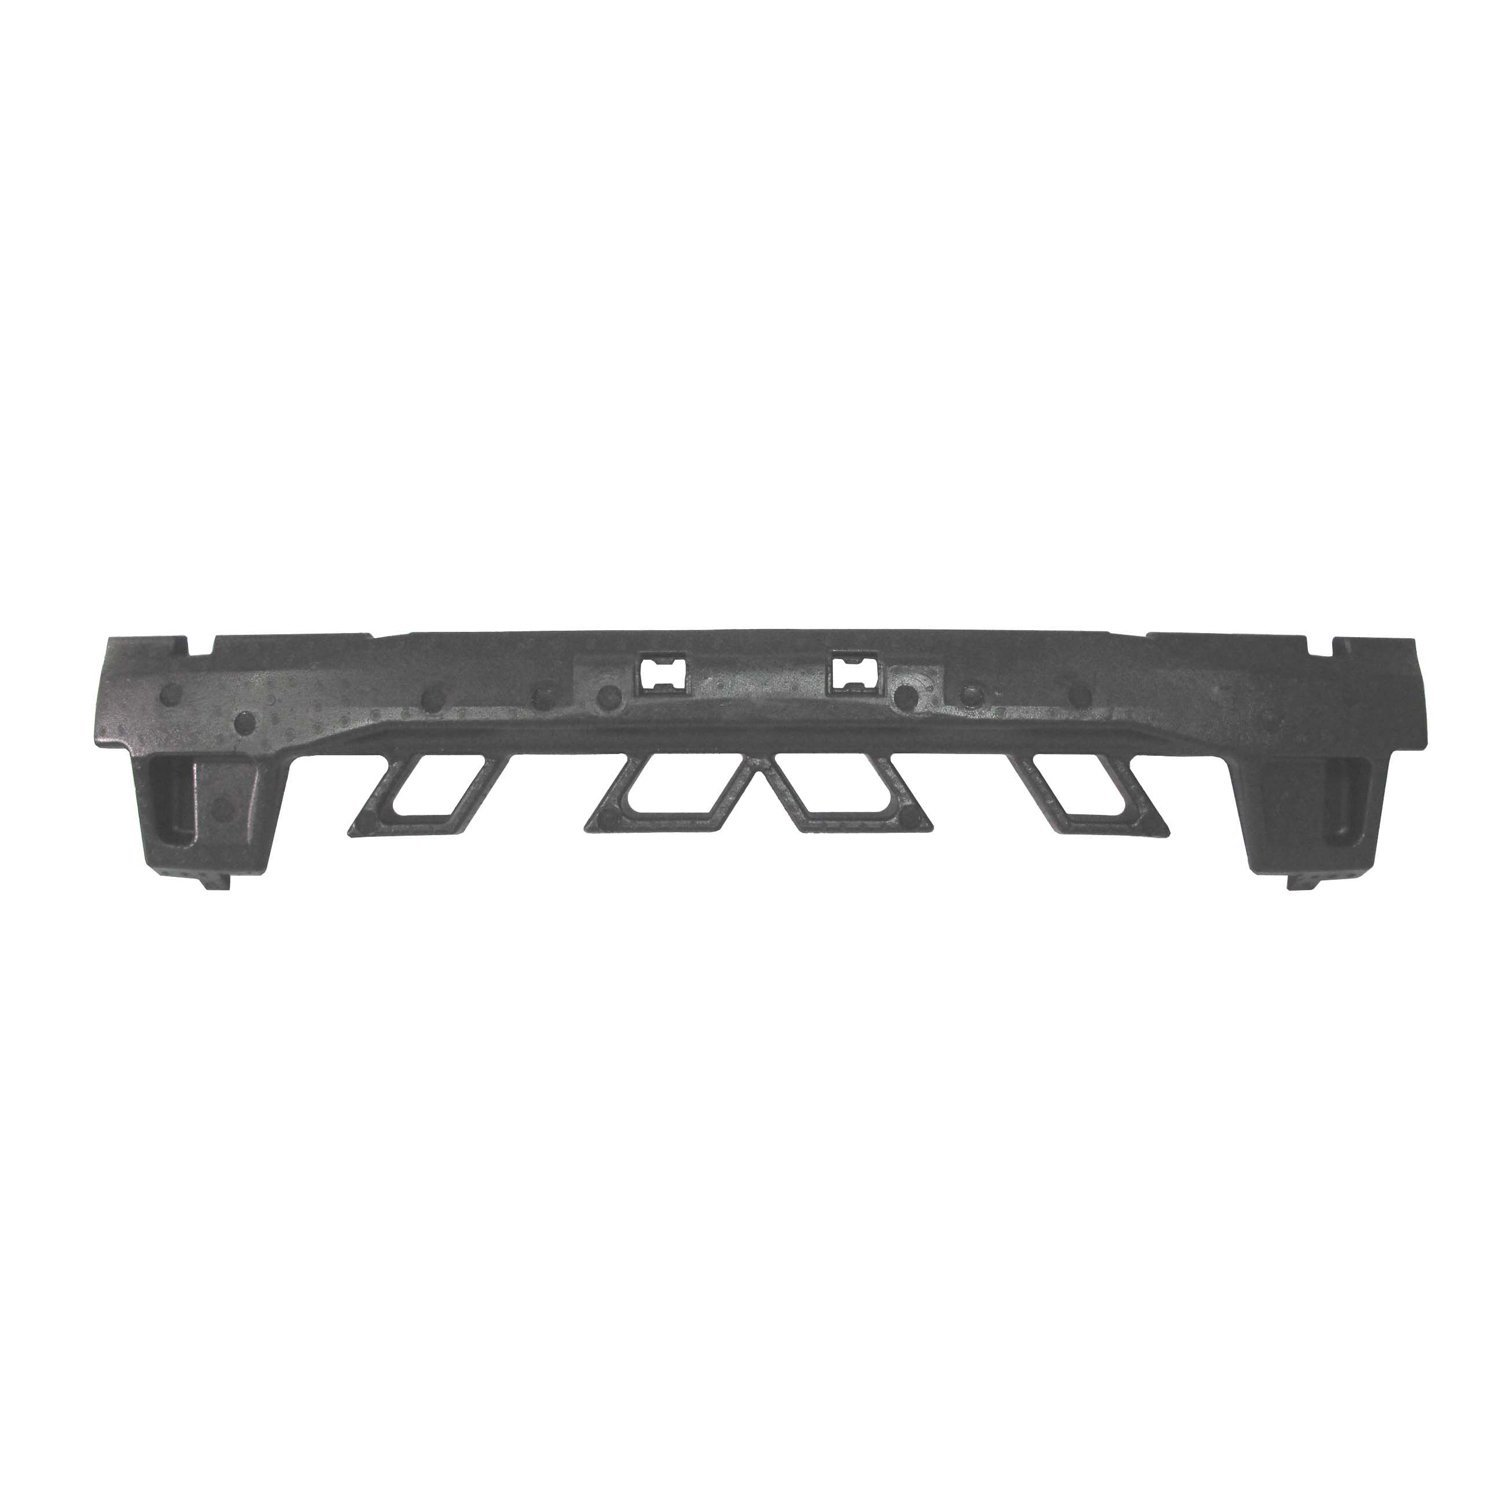 PTM CAPA TO1170120 Rear Bumper Energy Absorber for 03-08 Toyota Corolla